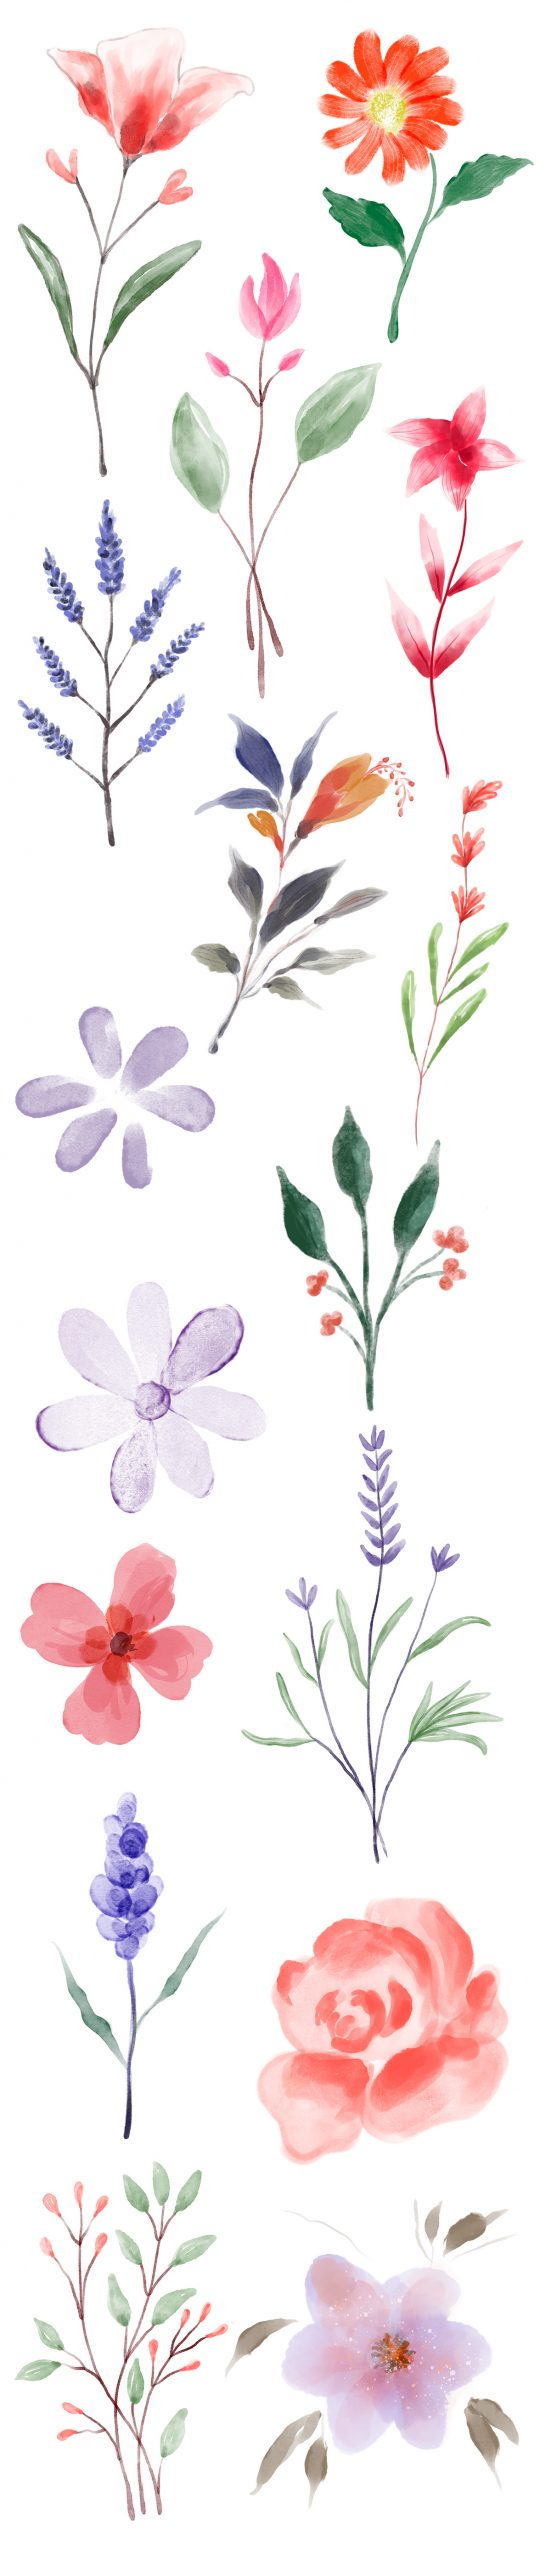 Hand-painted Watercolour Floral Elements